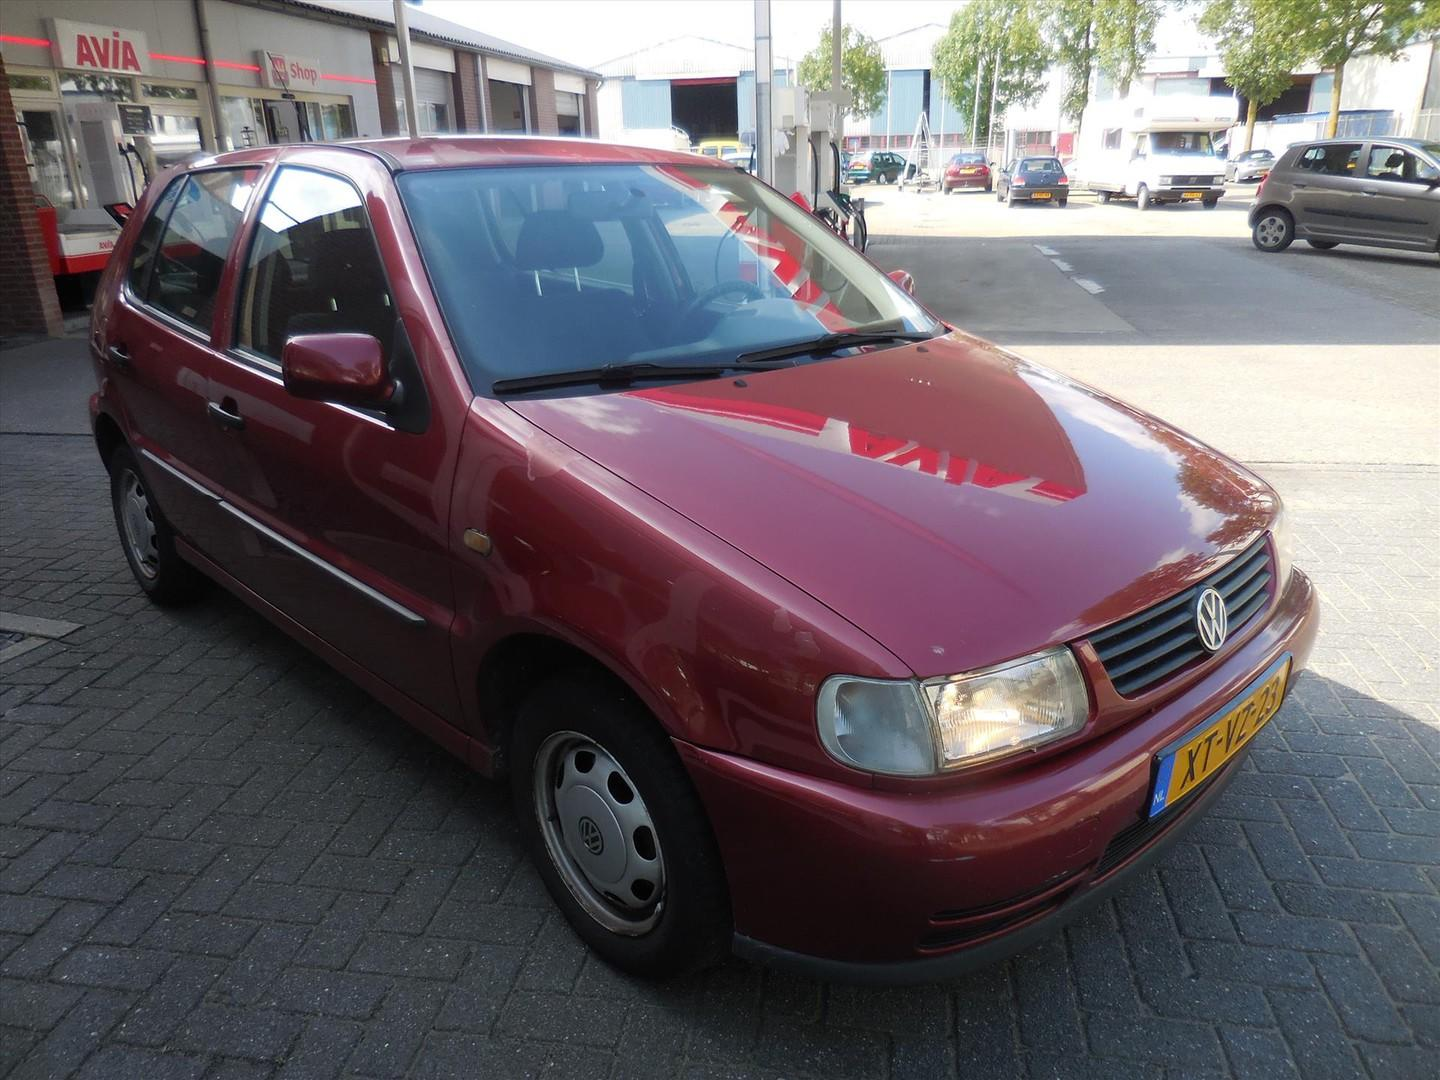 Volkswagen Polo 1.6 55 kw automaat airco